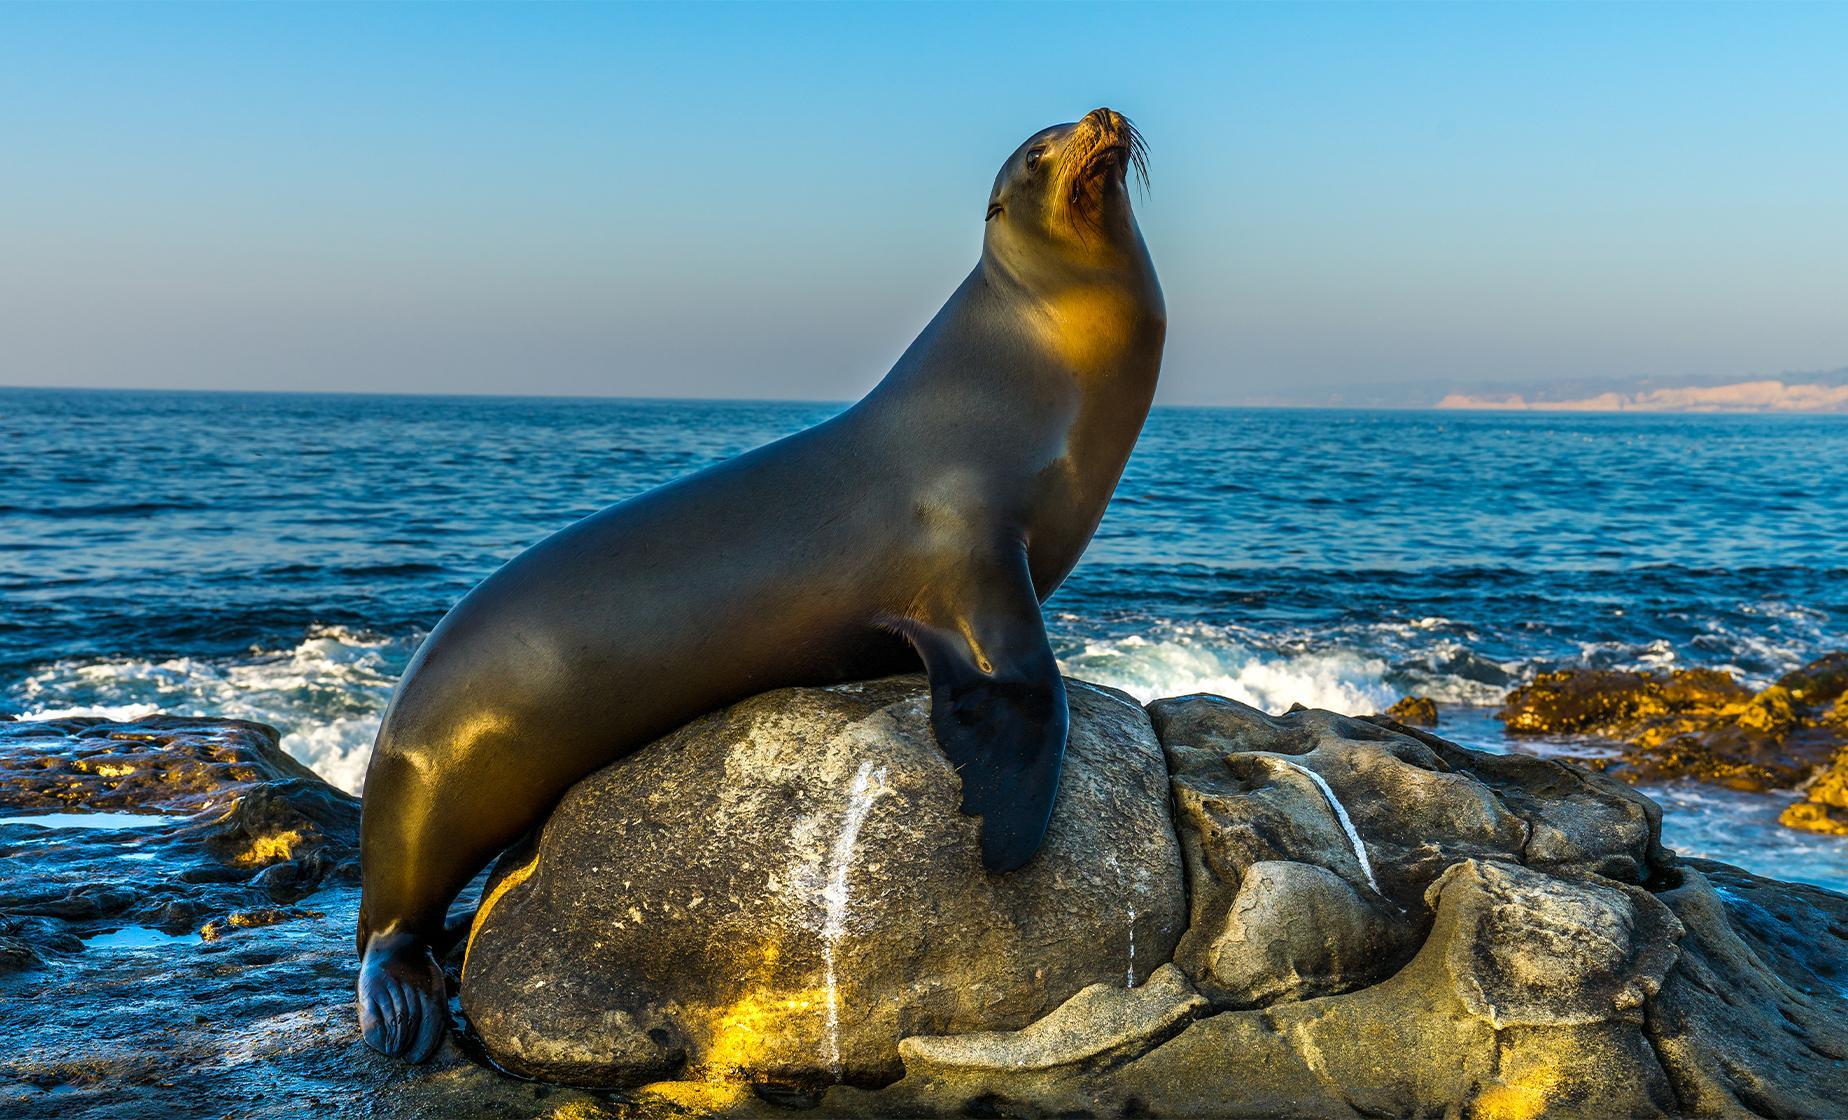 Two Hour San Diego Harbor Cruise and Sea Lion Adventure (South and North Bay)